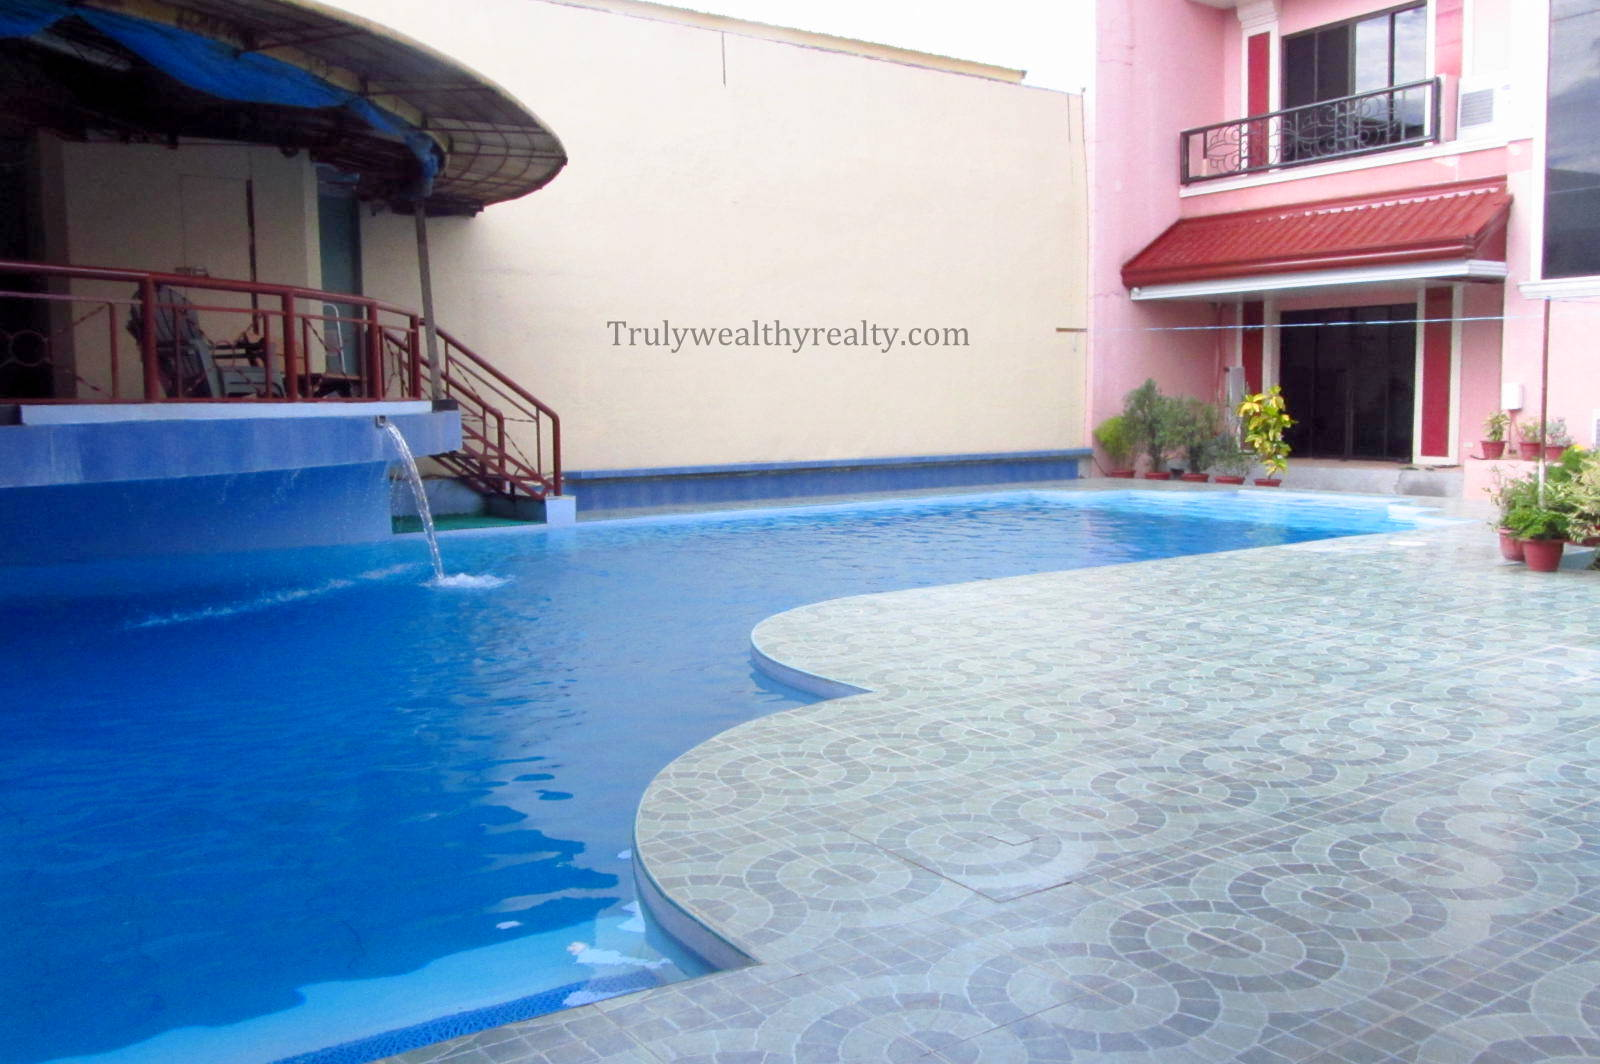 Carmen 4 bedroom house with swimming pool truly wealthy for Four bedroom house with pool